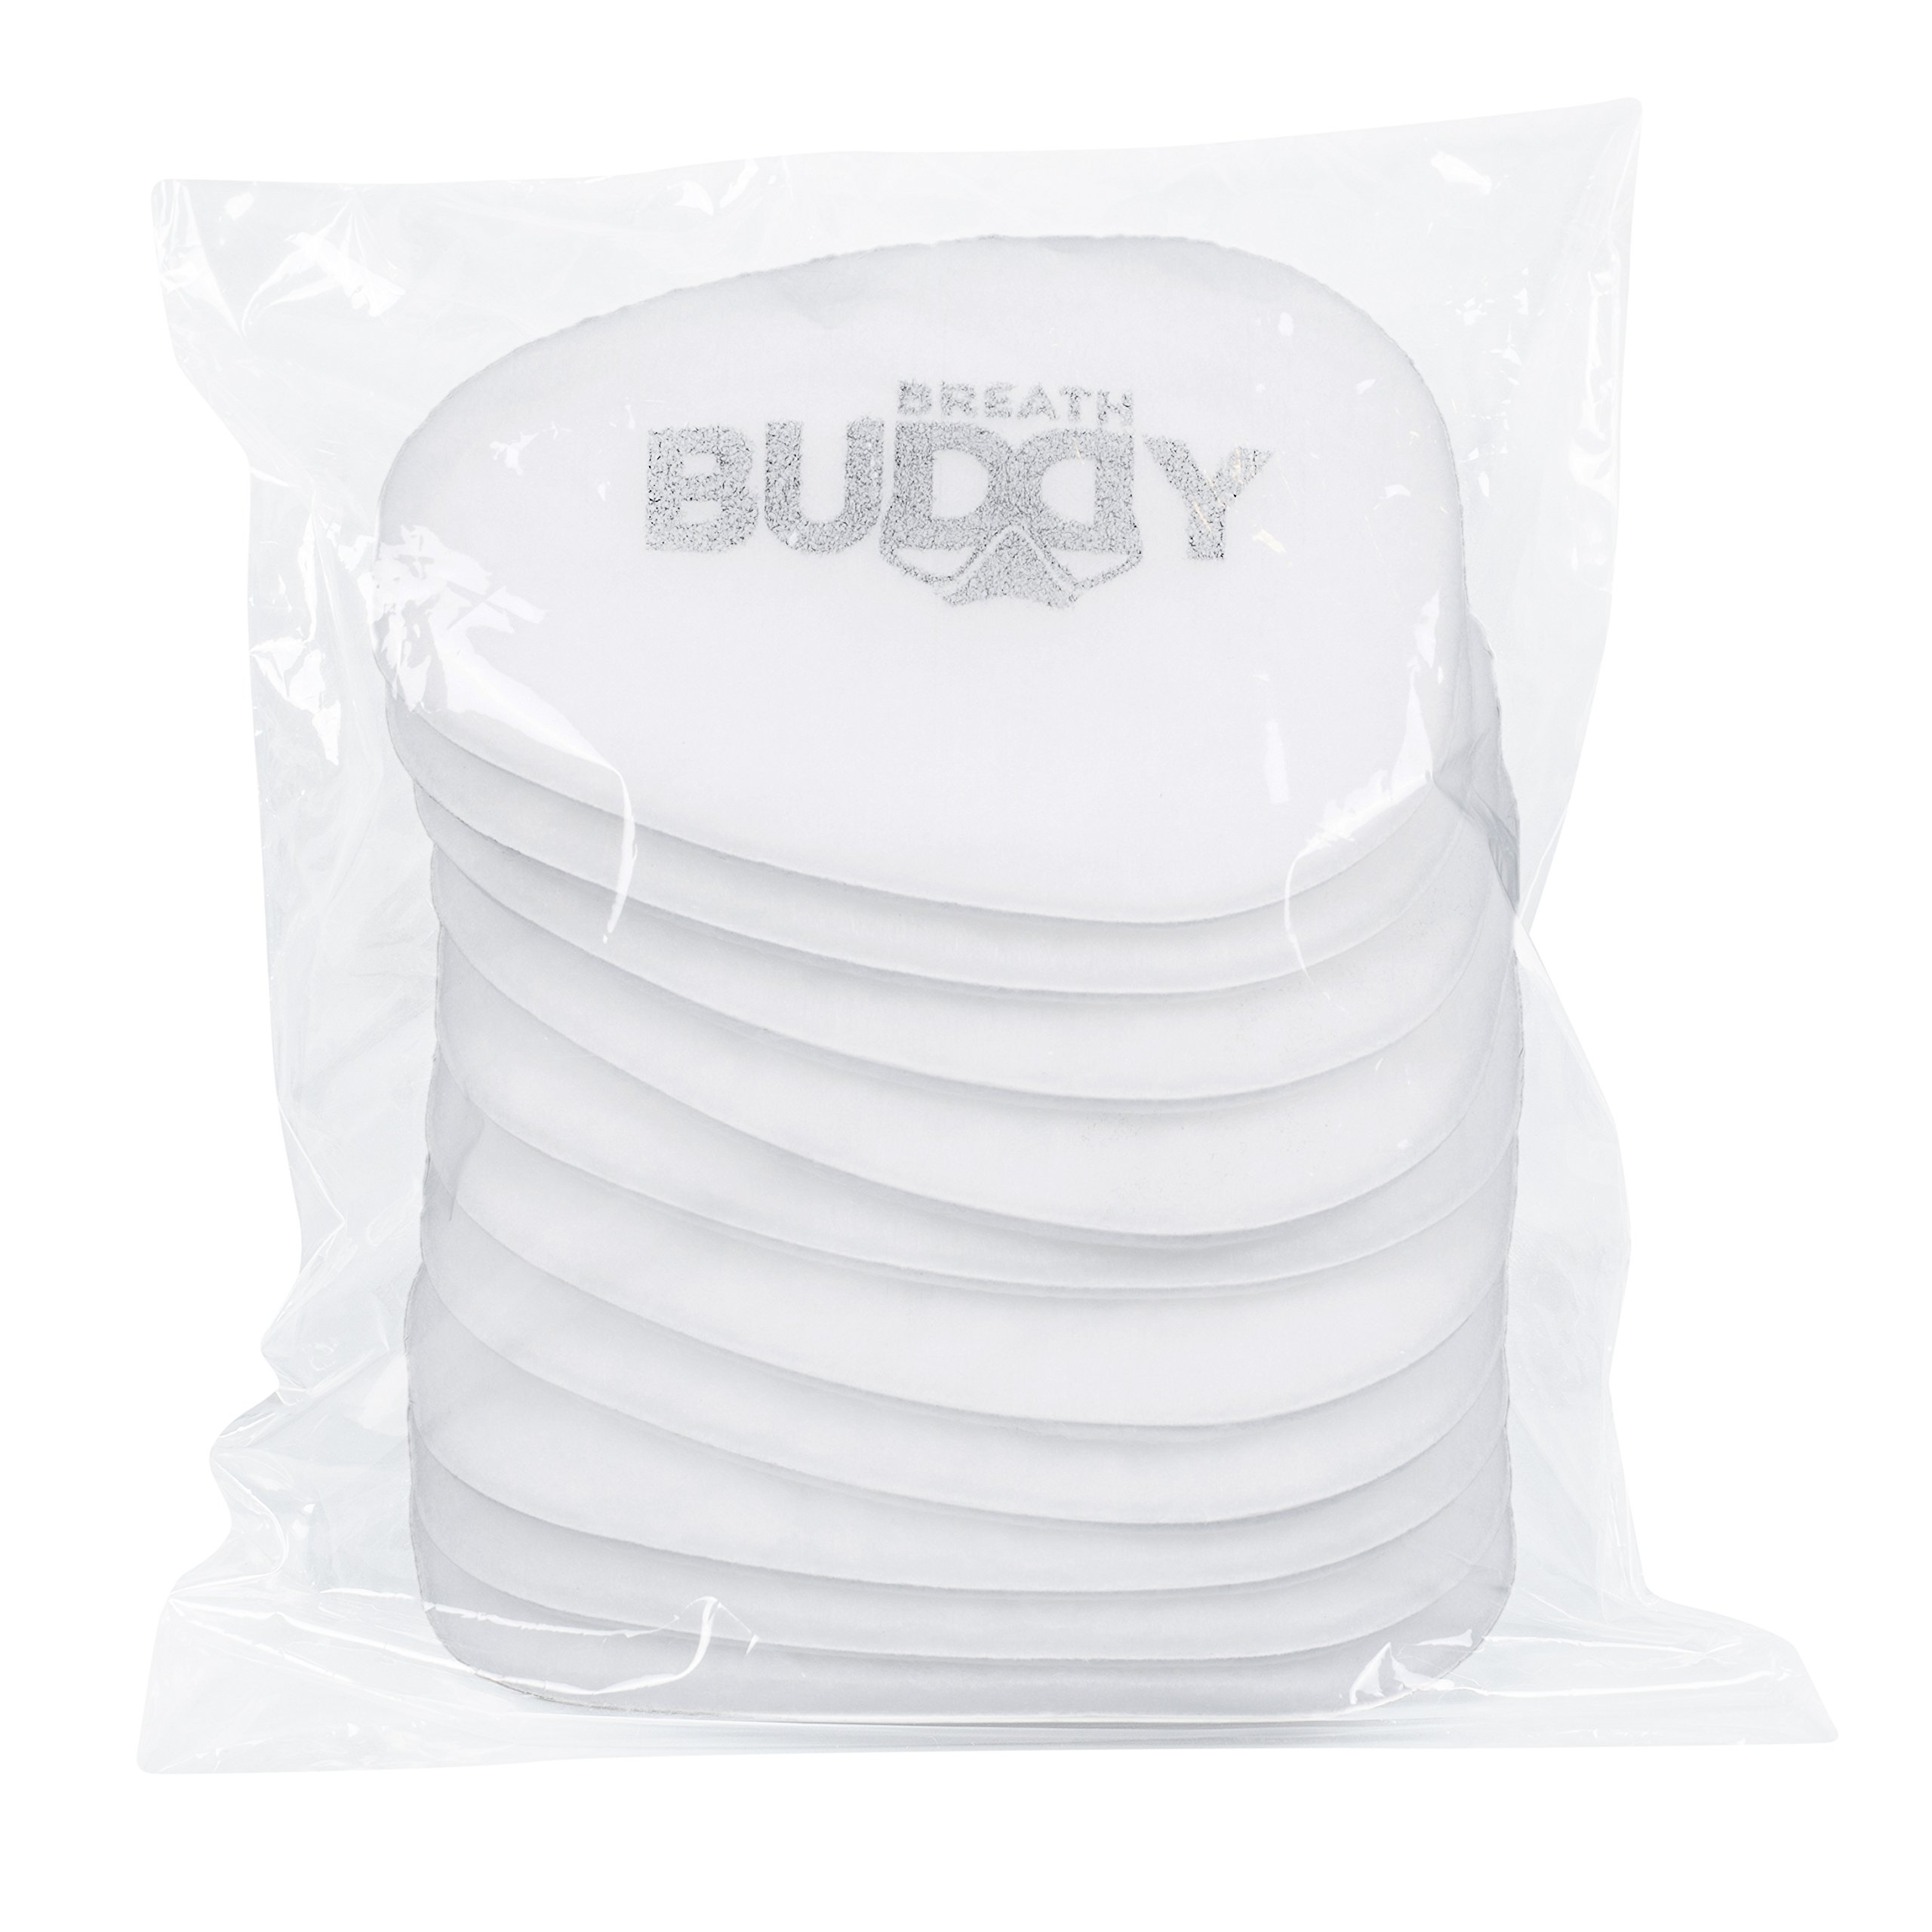 Breath Buddy Replacement Filters - Pack of 10 - Particulate Respiratory Protection